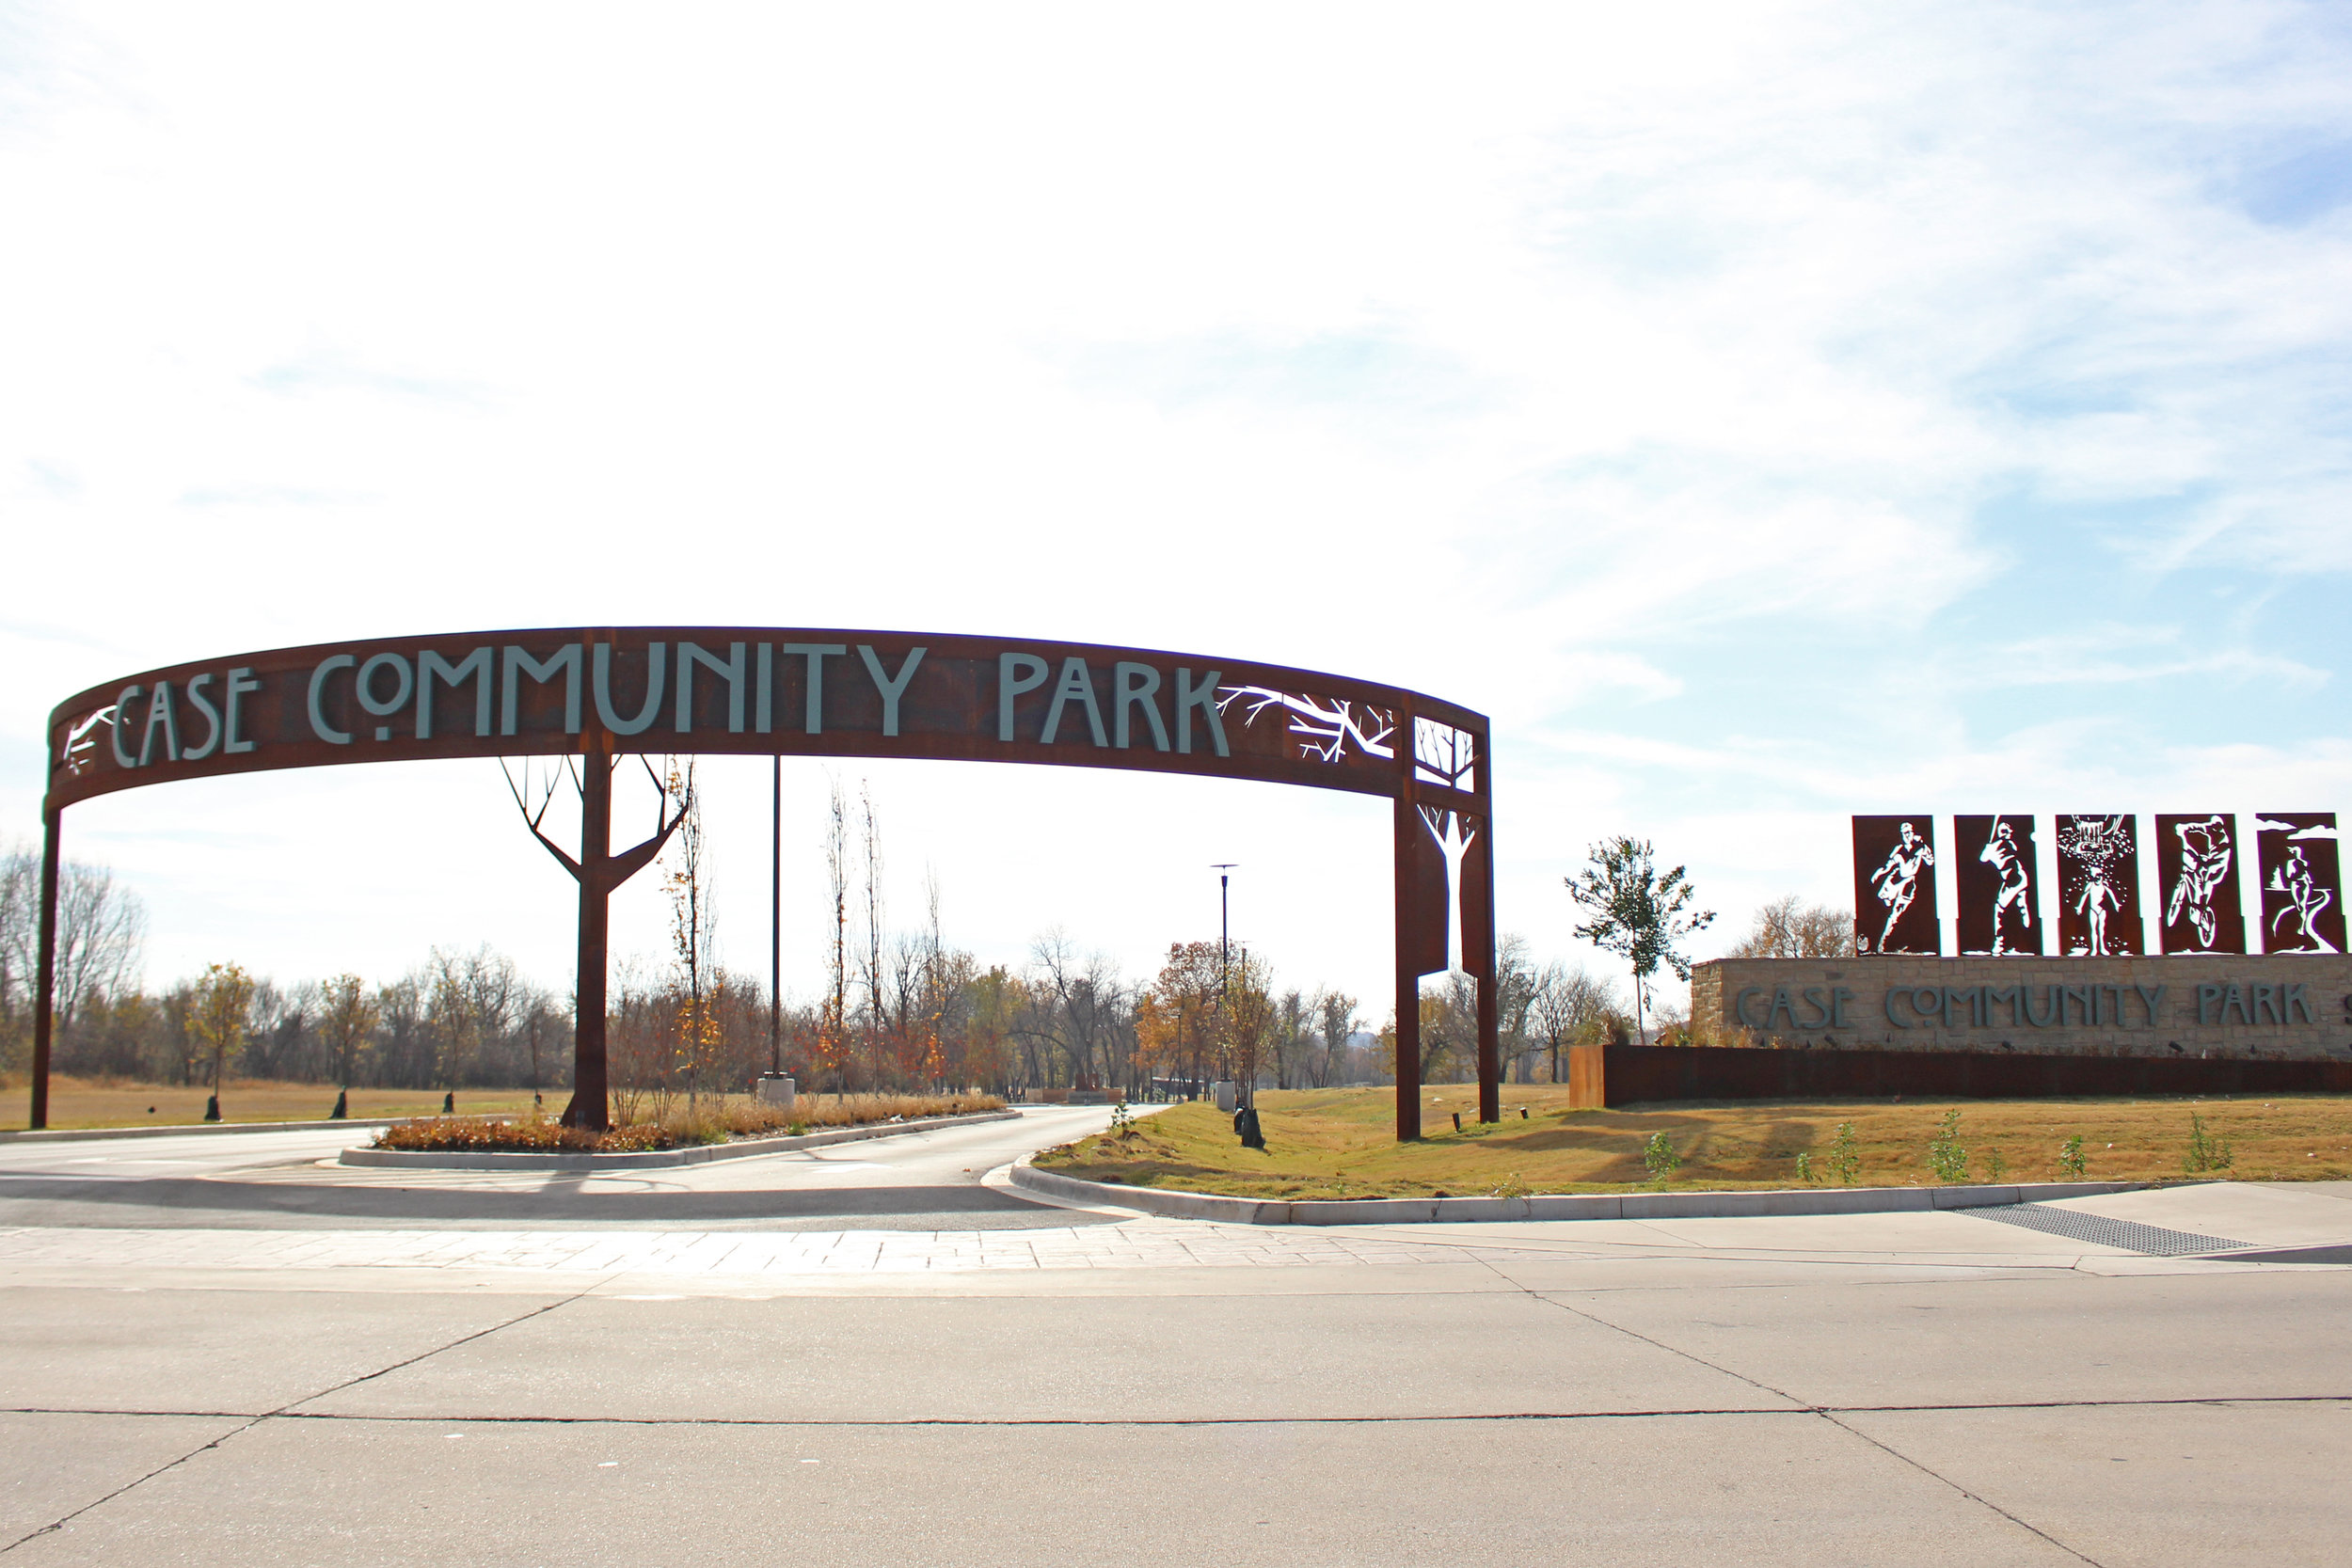 CAse Community park 2500 south river city park road